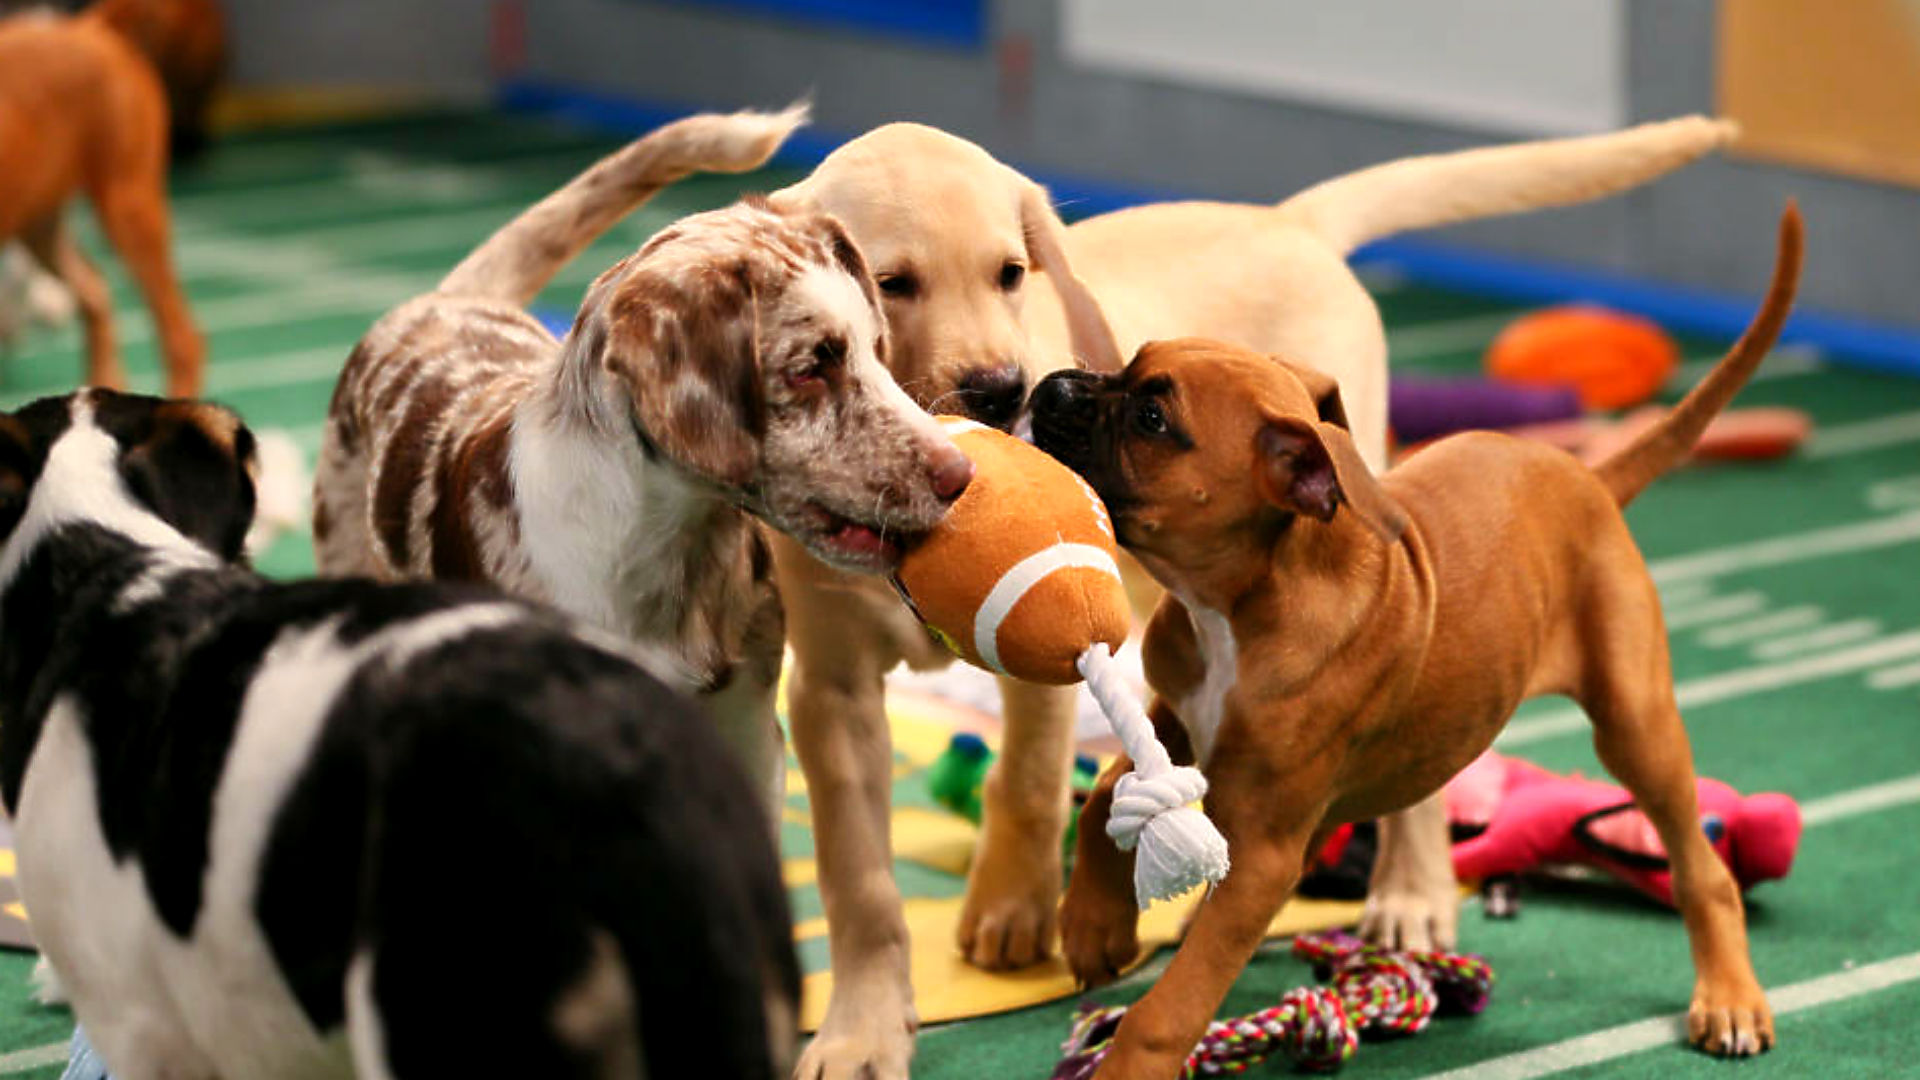 puppy bowl020516 animalplanet ftrjpg_s8jsfiznrgky12zw3wswdc5tr?t= 1309890166&w=960&quality=70 puppy bowl 2018 time, date & channel for the cutest game of the